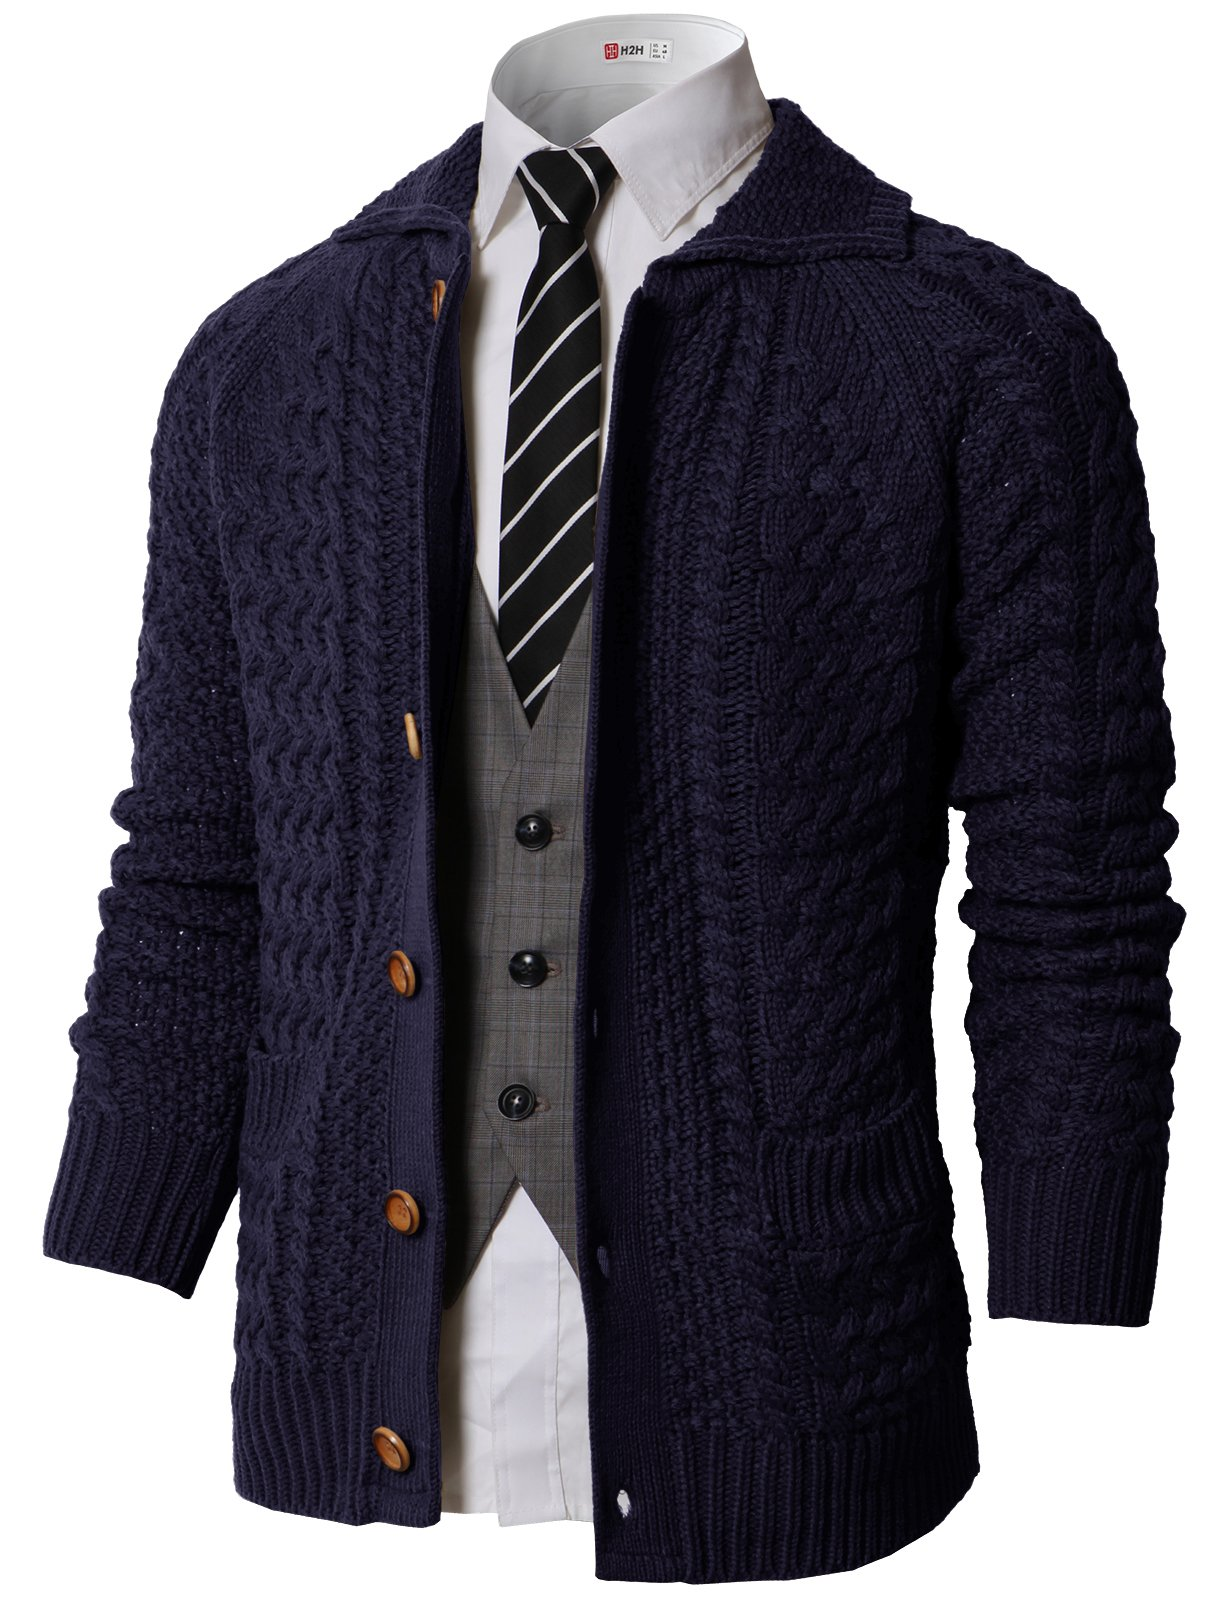 H2H Men's Shawl Collar Ribbed Button-up Cardigan Sweater Navy US M/Asia M (KMOCAL0177)